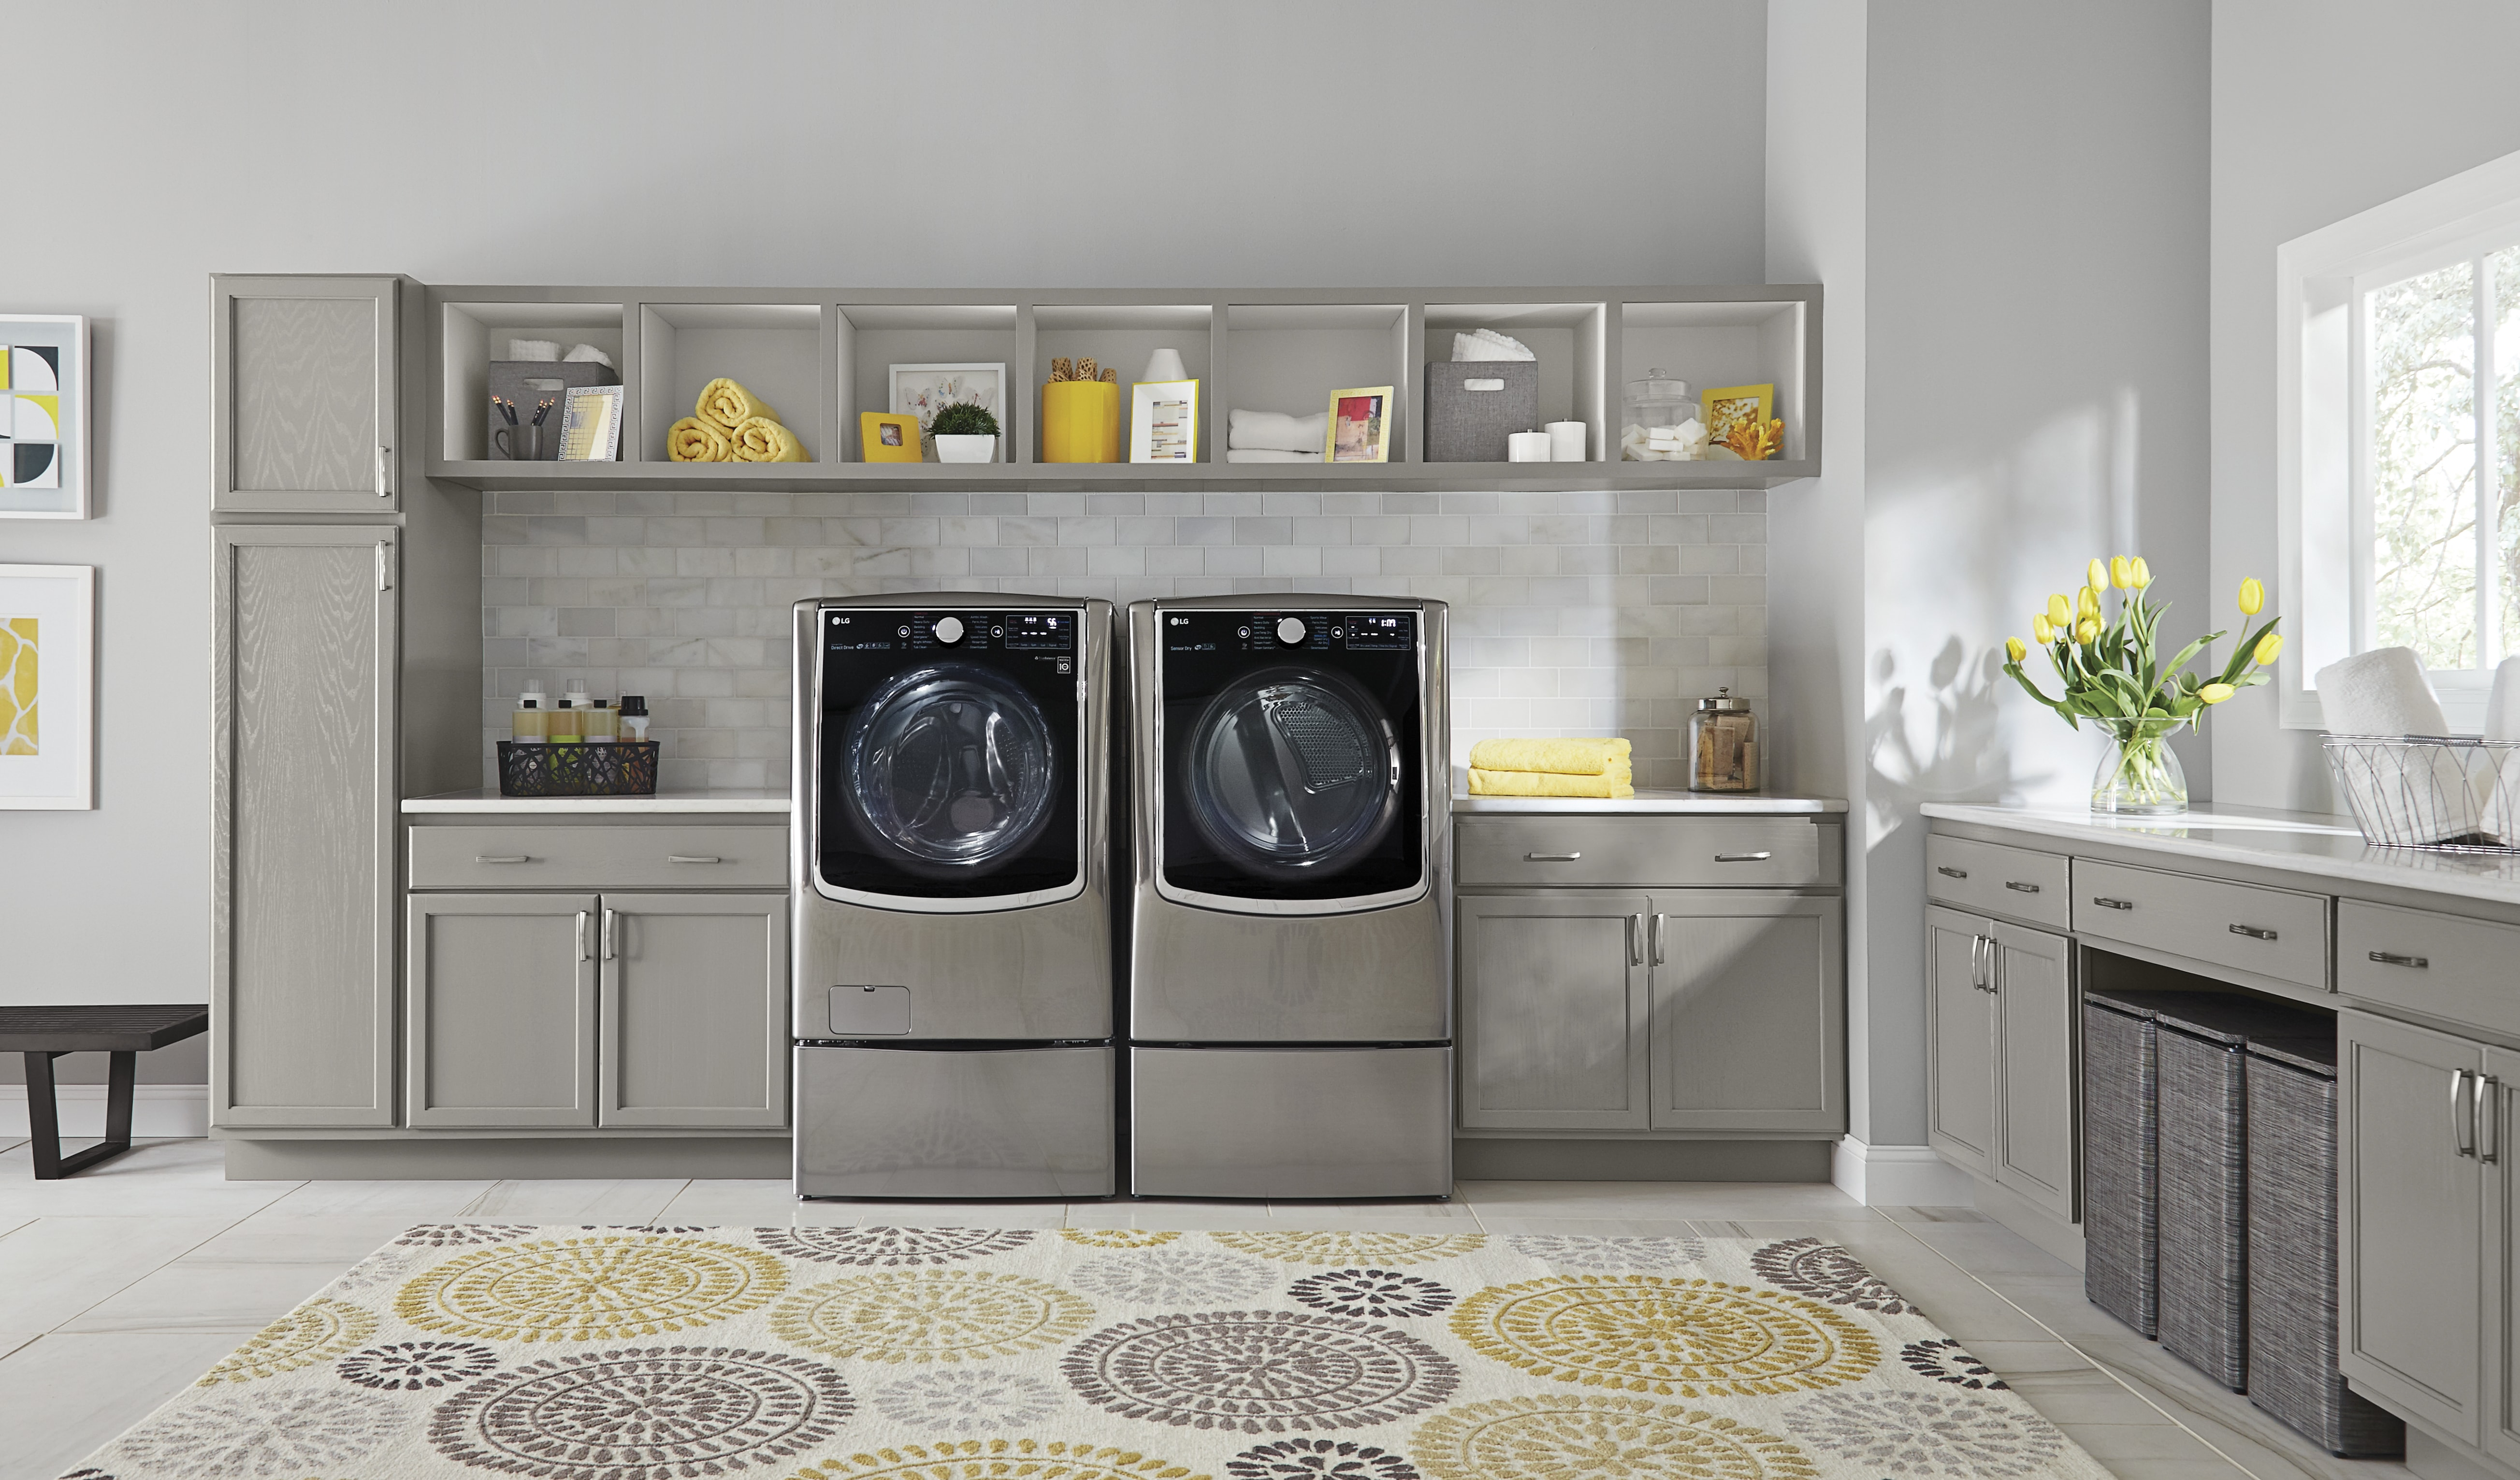 ENERGY STAR Dryers and Washers Save More Than Money